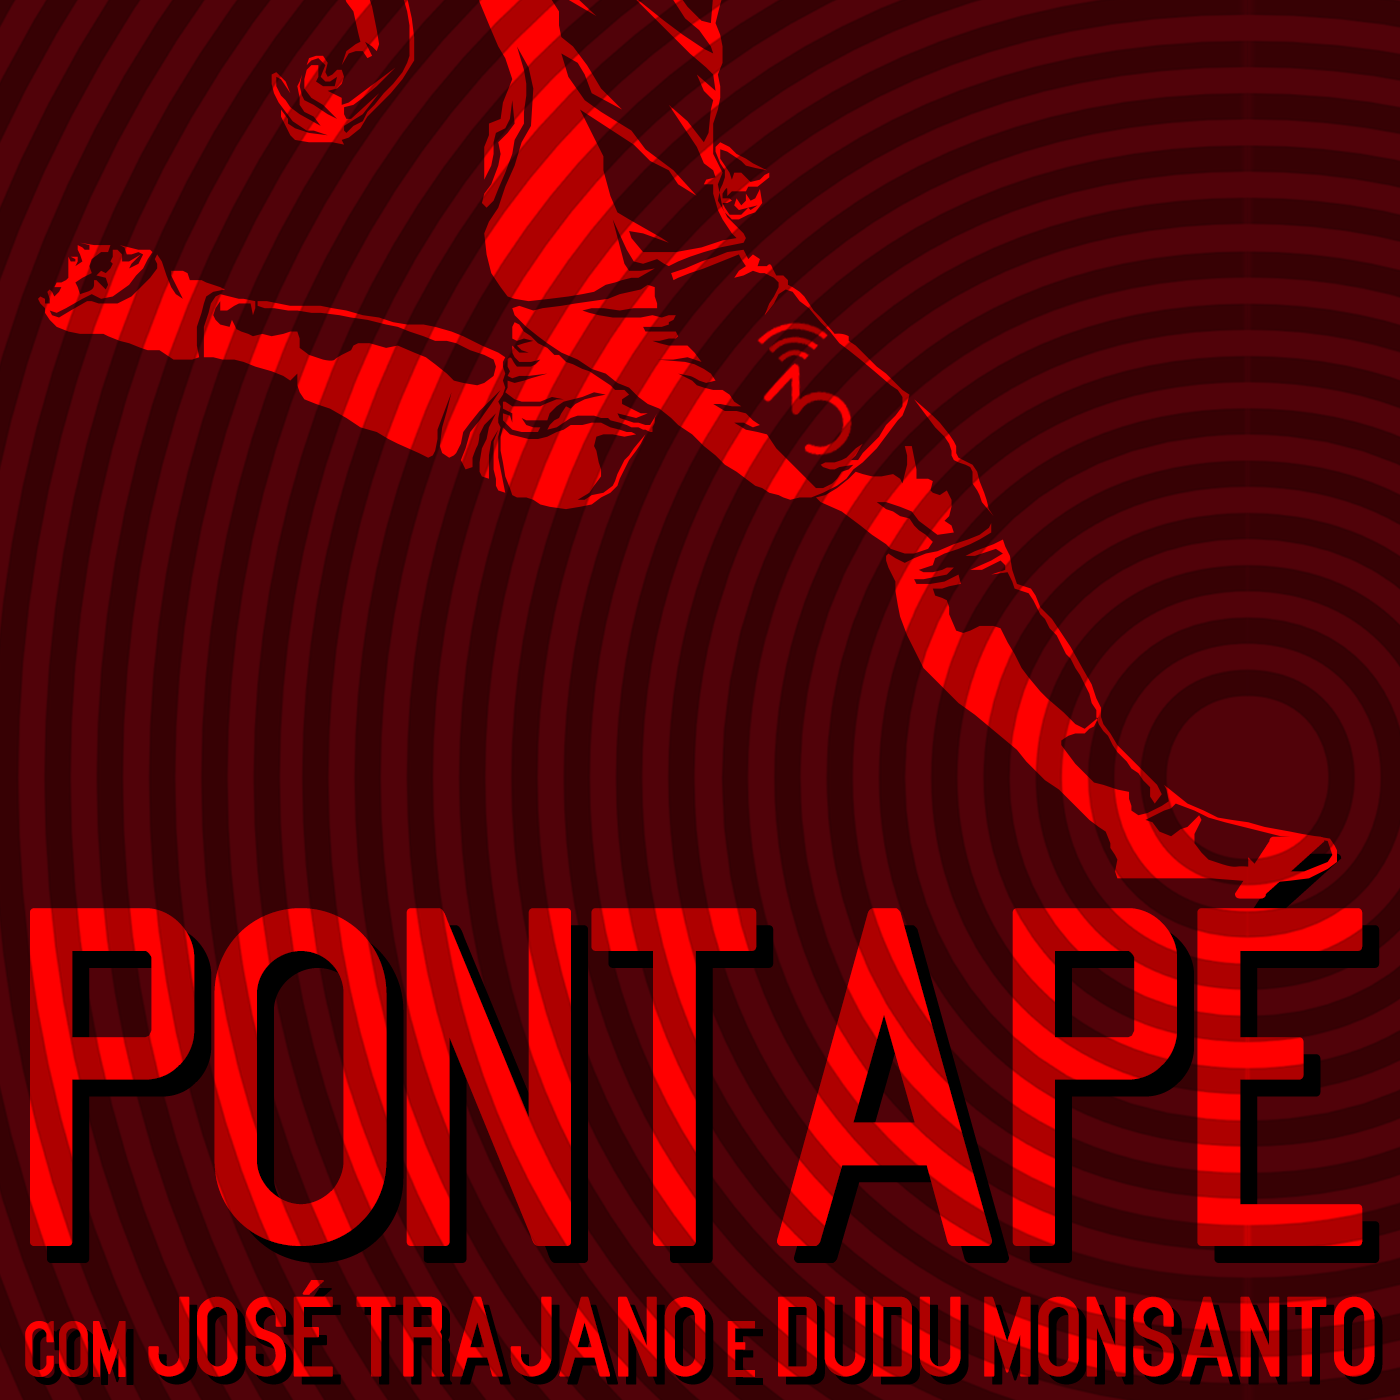 Podcast Pontapé